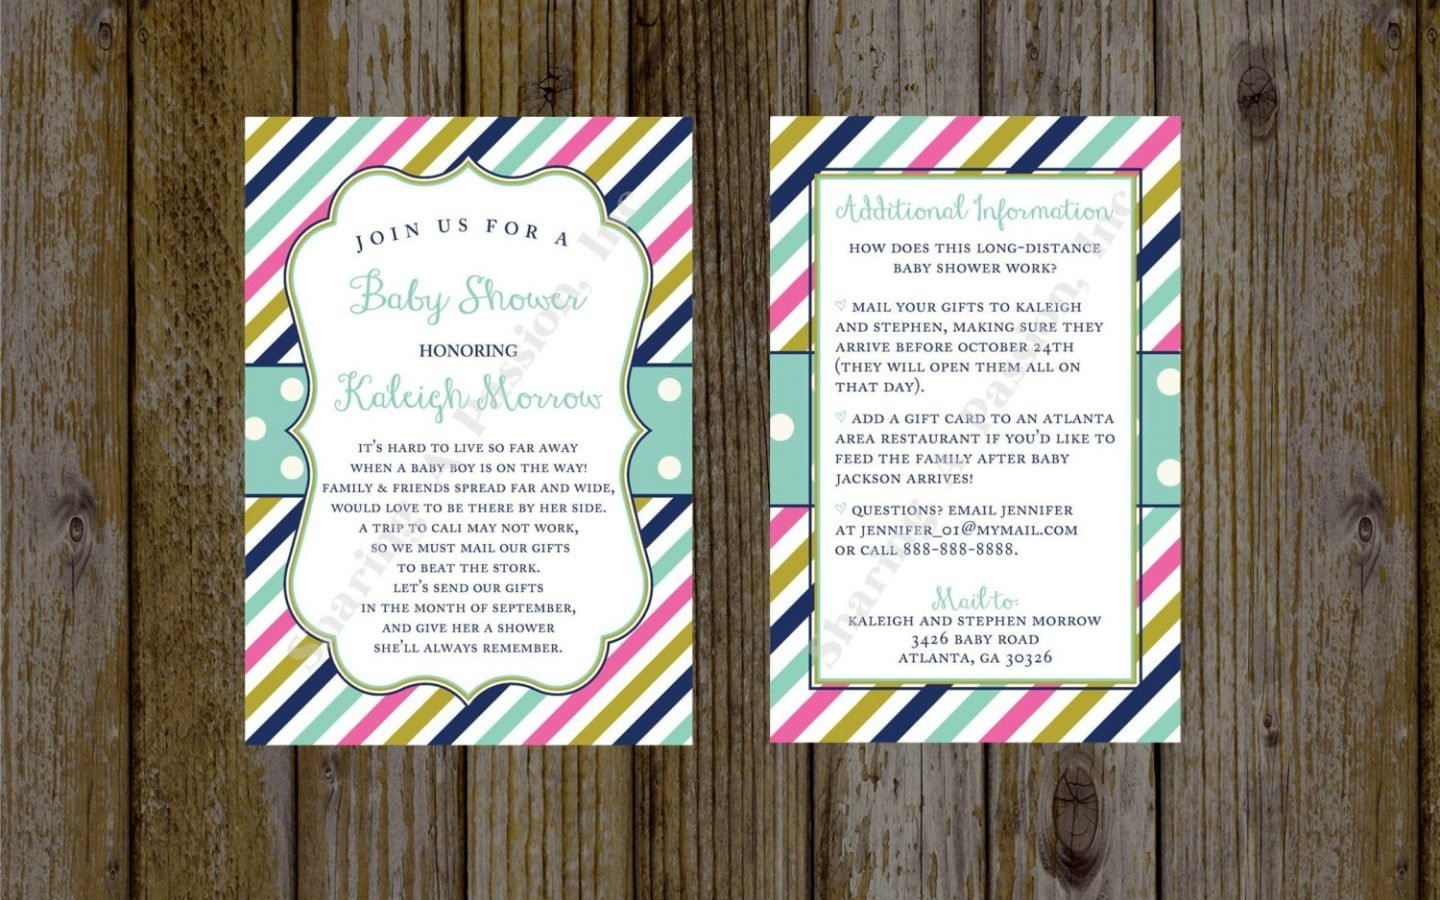 10 Cute Long Distance Baby Shower Ideas impressive microsoft baby shower invitations exactly luxurious 2020